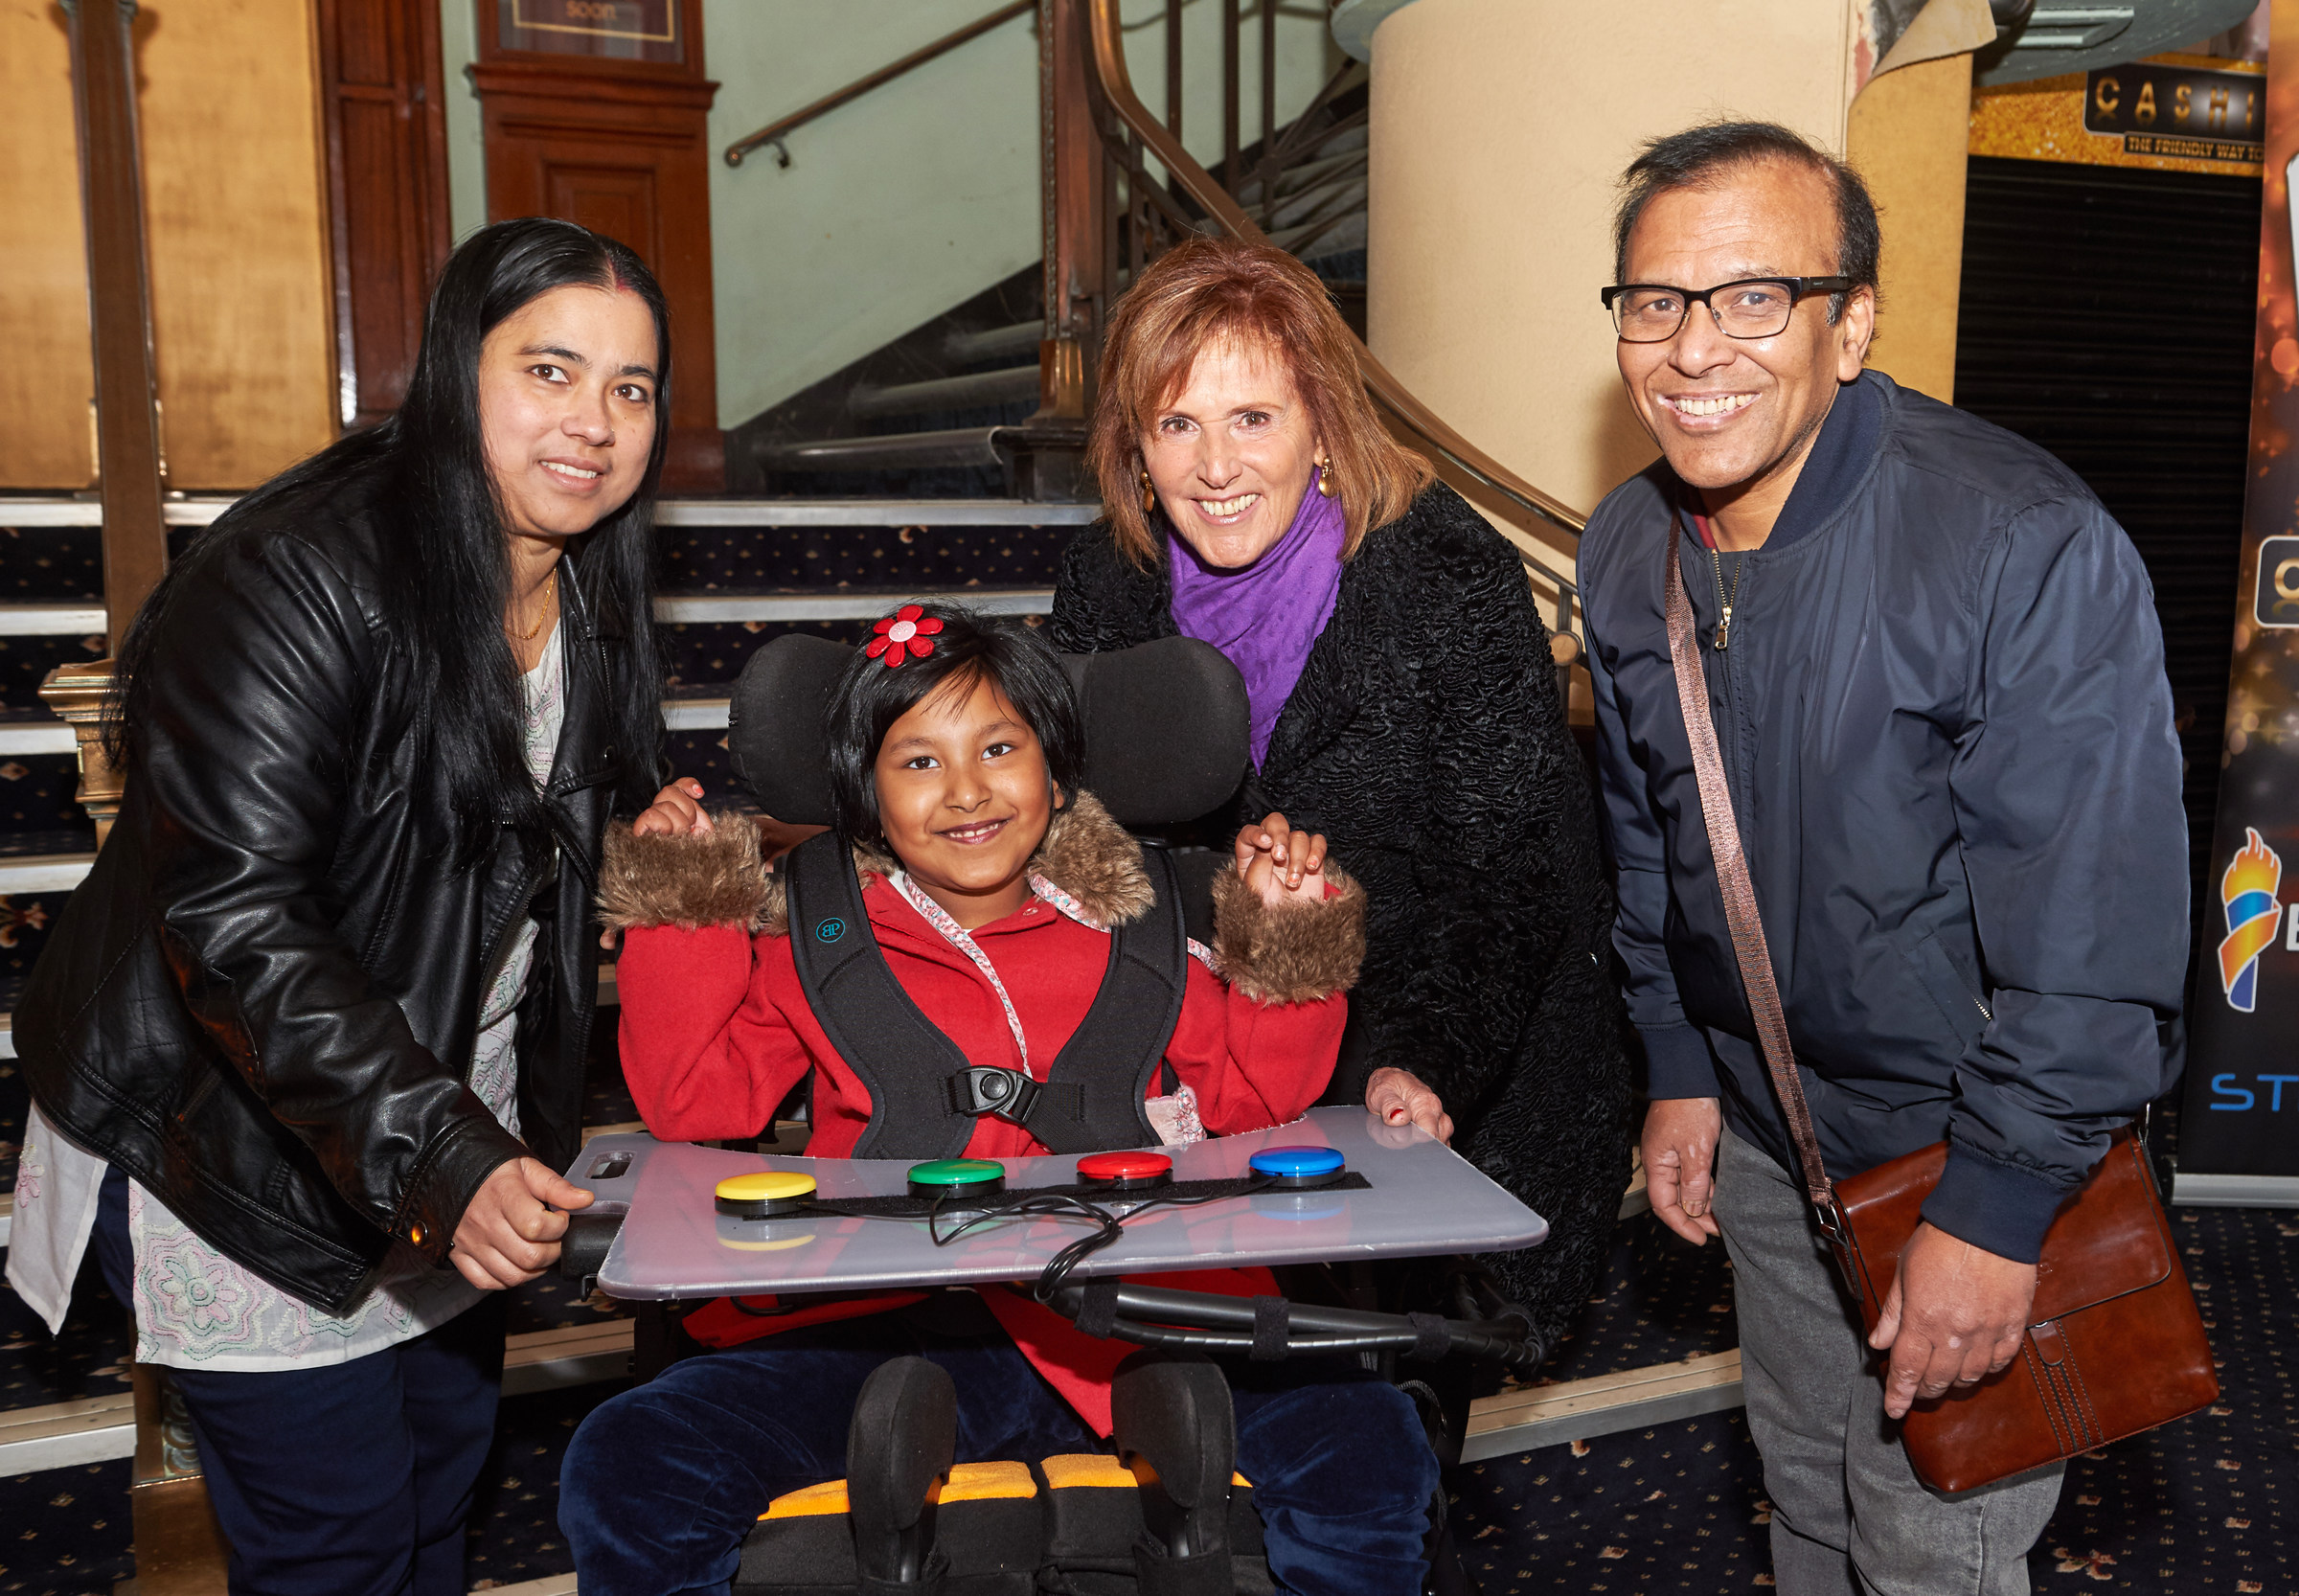 Parents Sampa (far left) and Indrajit Saha with daughter Arna and Linda Lindsay co founder and trustee of the CHIP's charity (photo - Professional Images/@ProfImages)